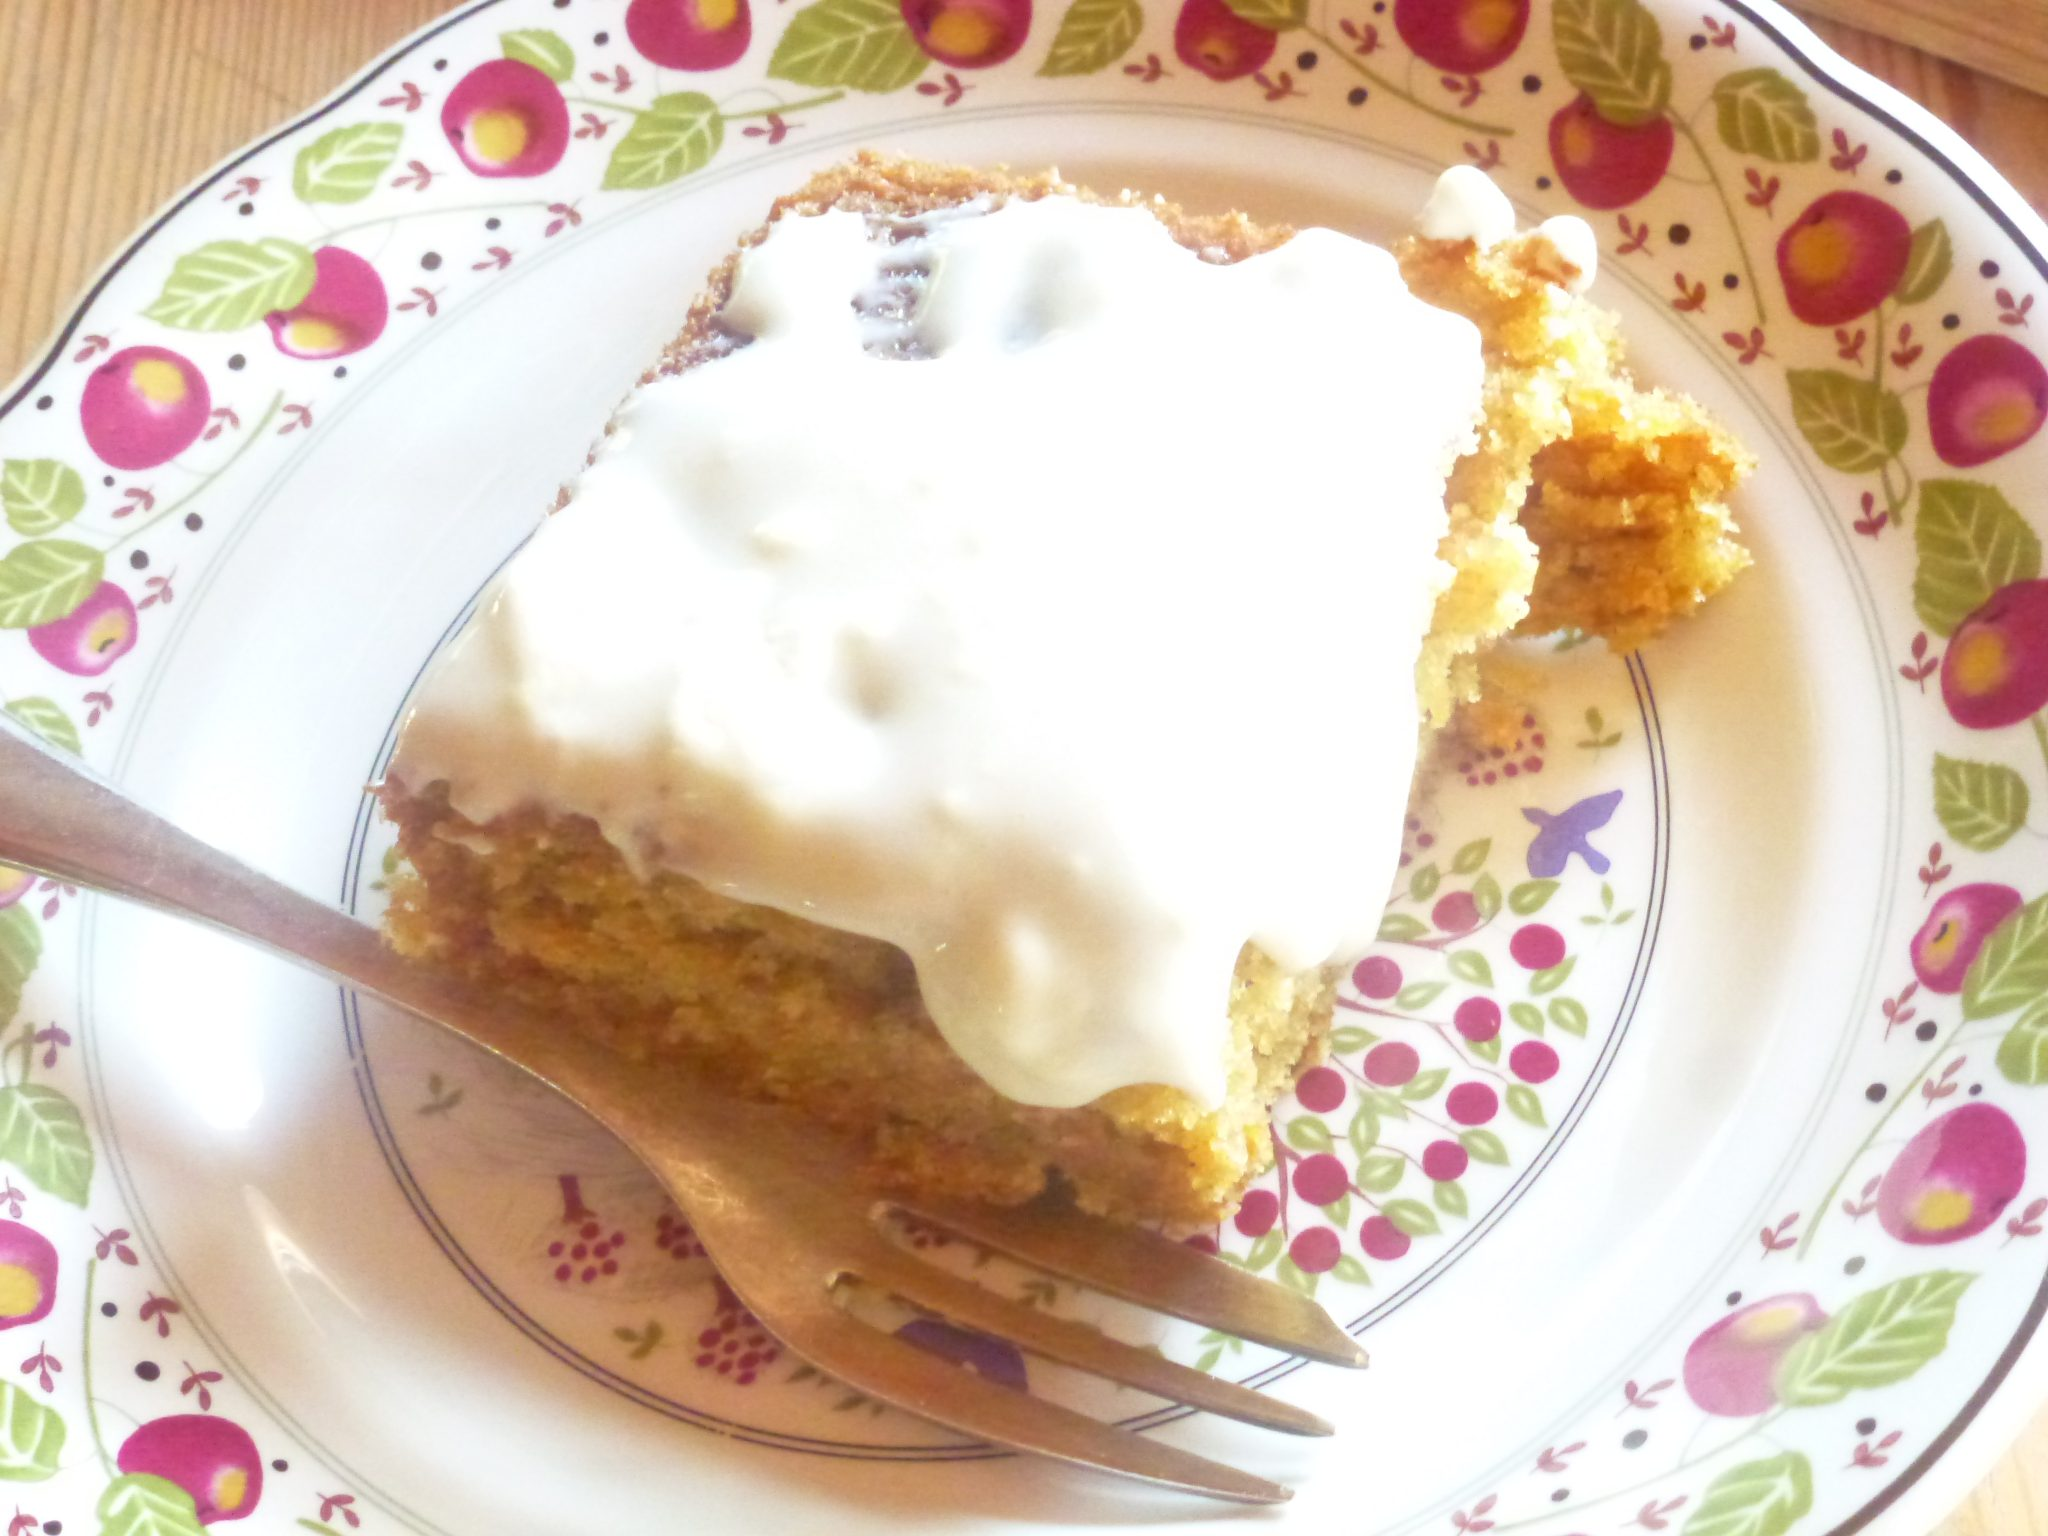 A slice of heaven - carrot cup cake